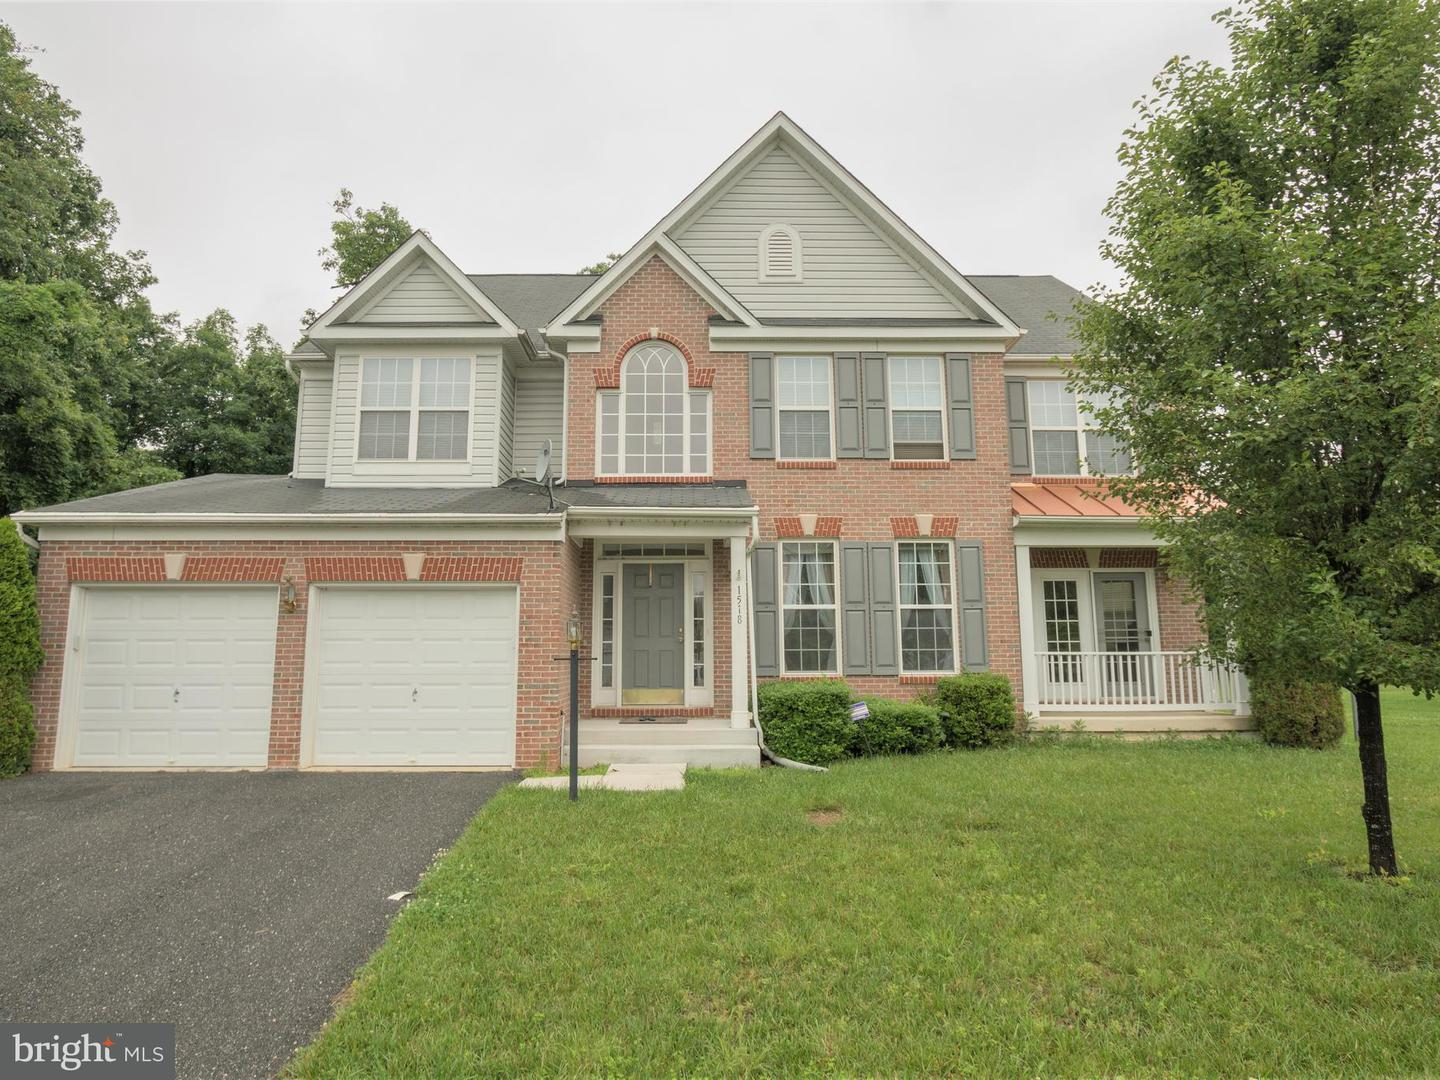 Other Residential for Rent at 1518 Fitzpatrick Dr Severn, Maryland 21144 United States